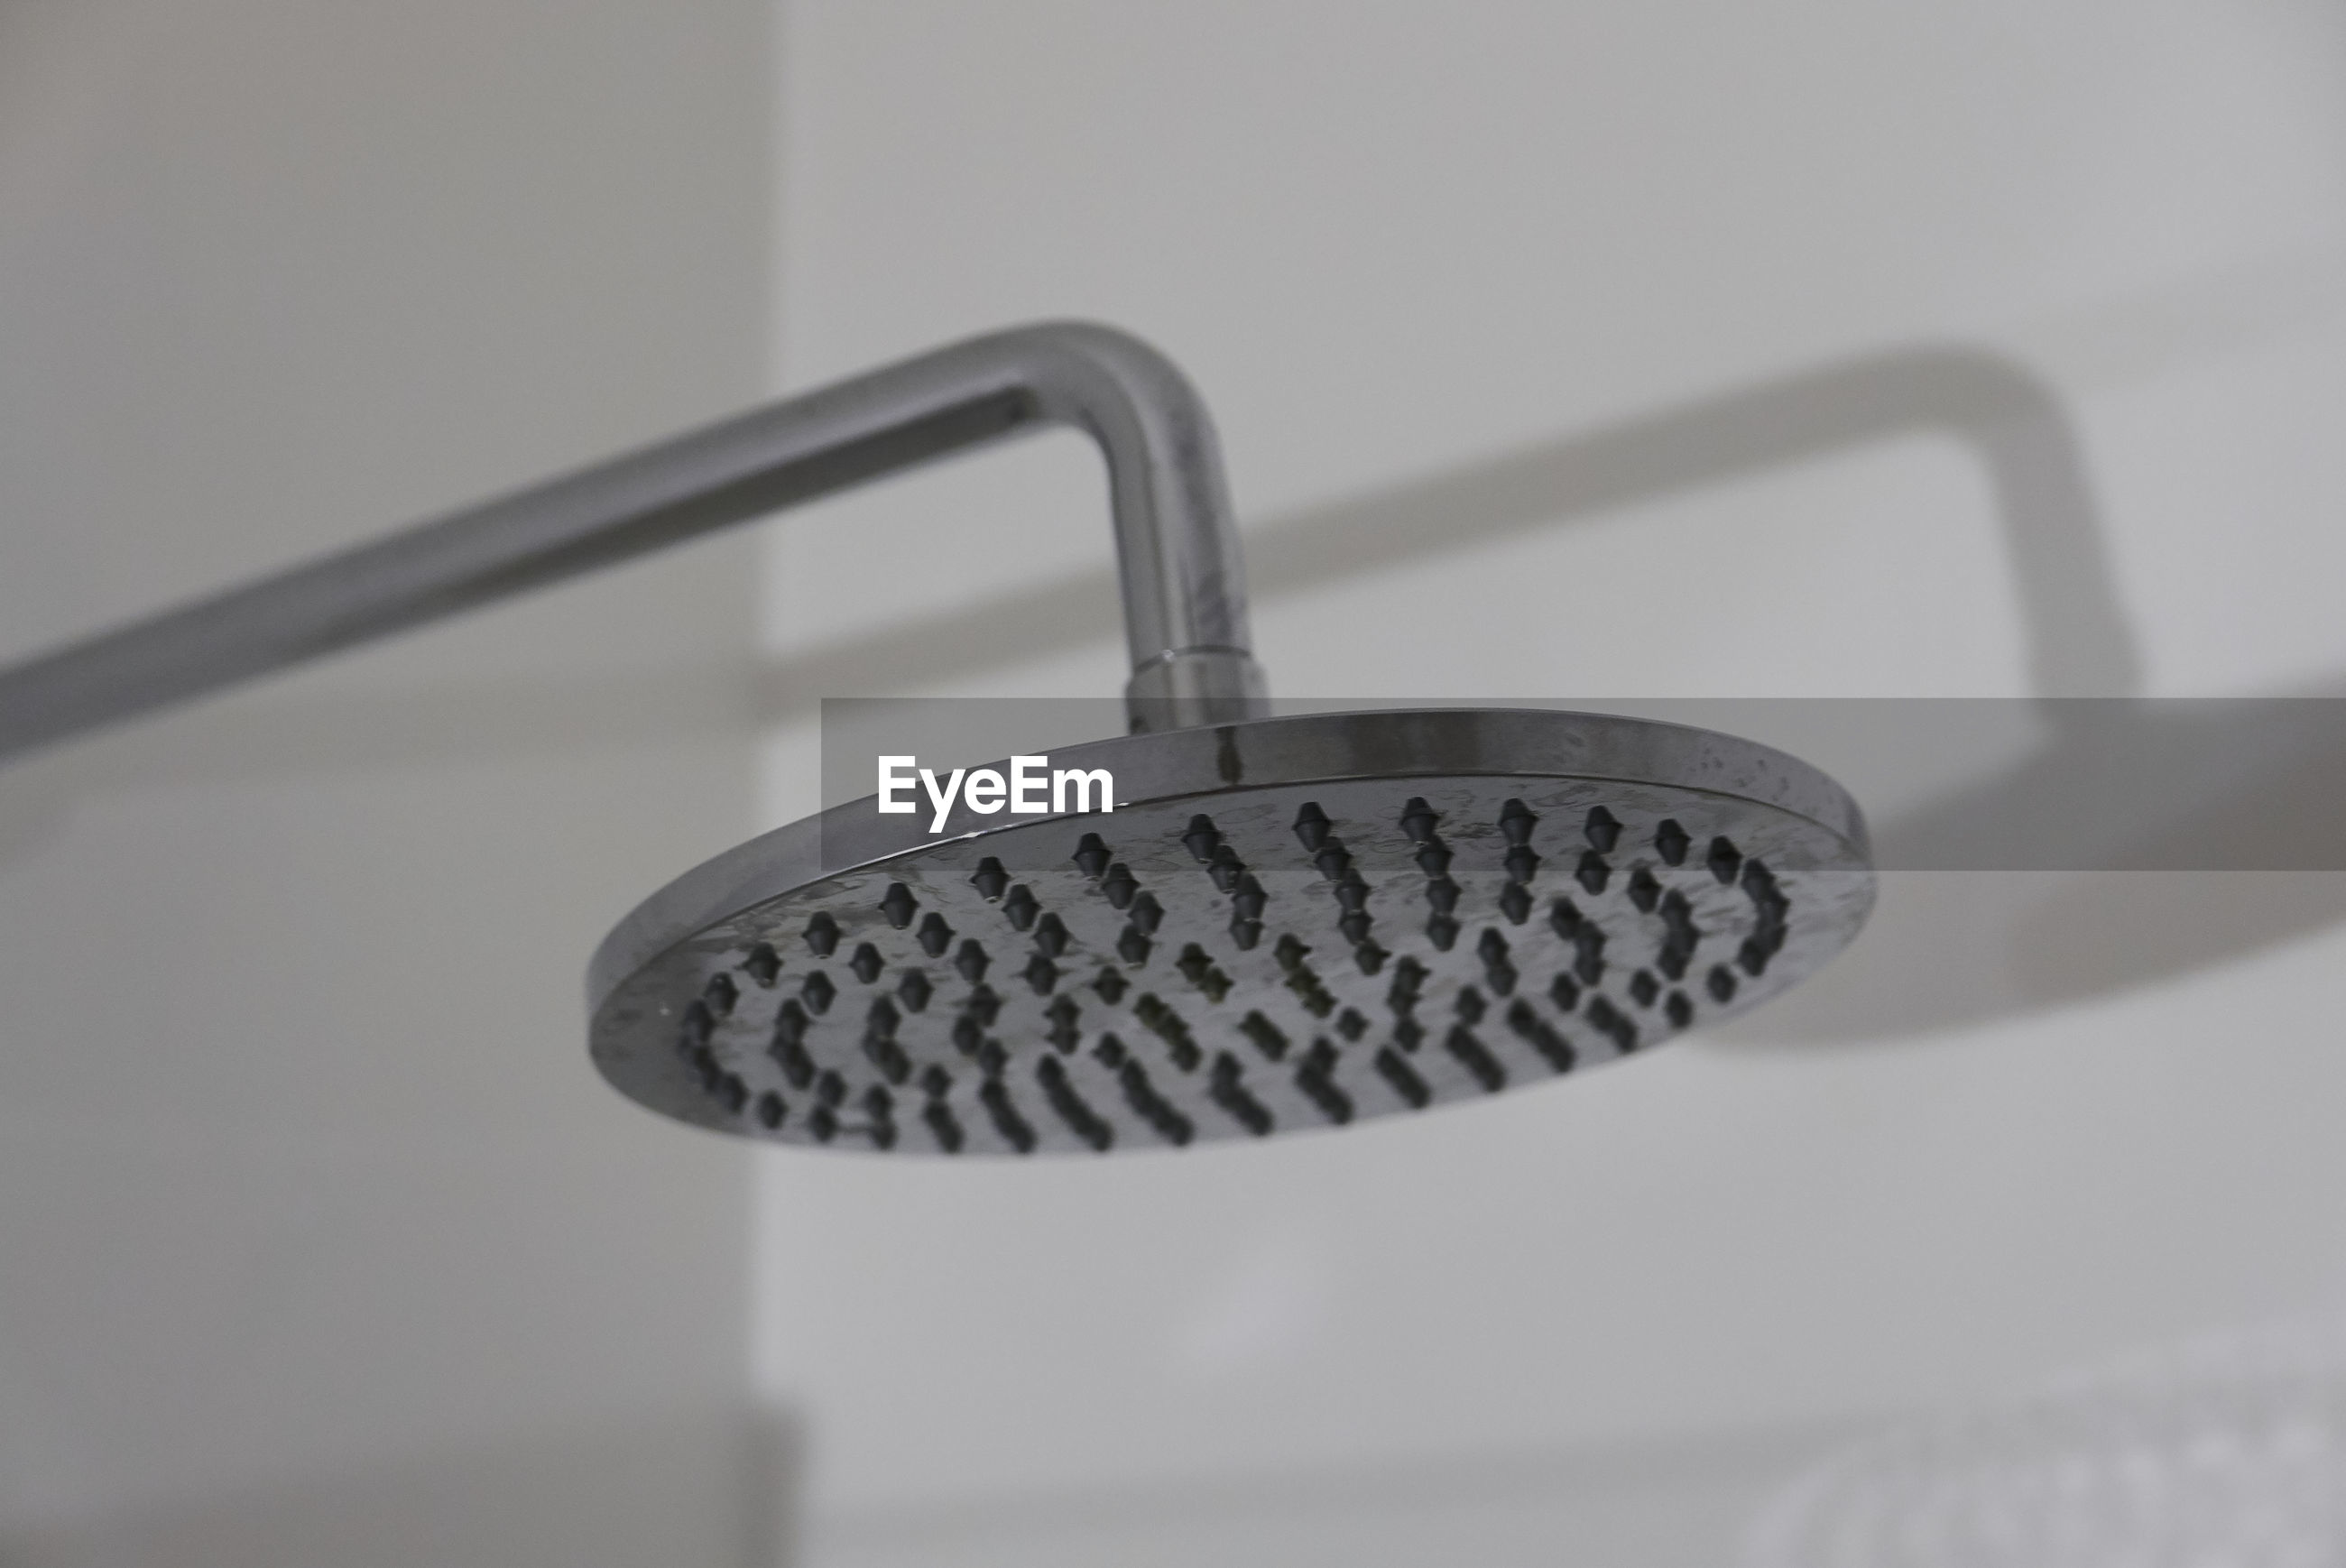 Close-up of shower head